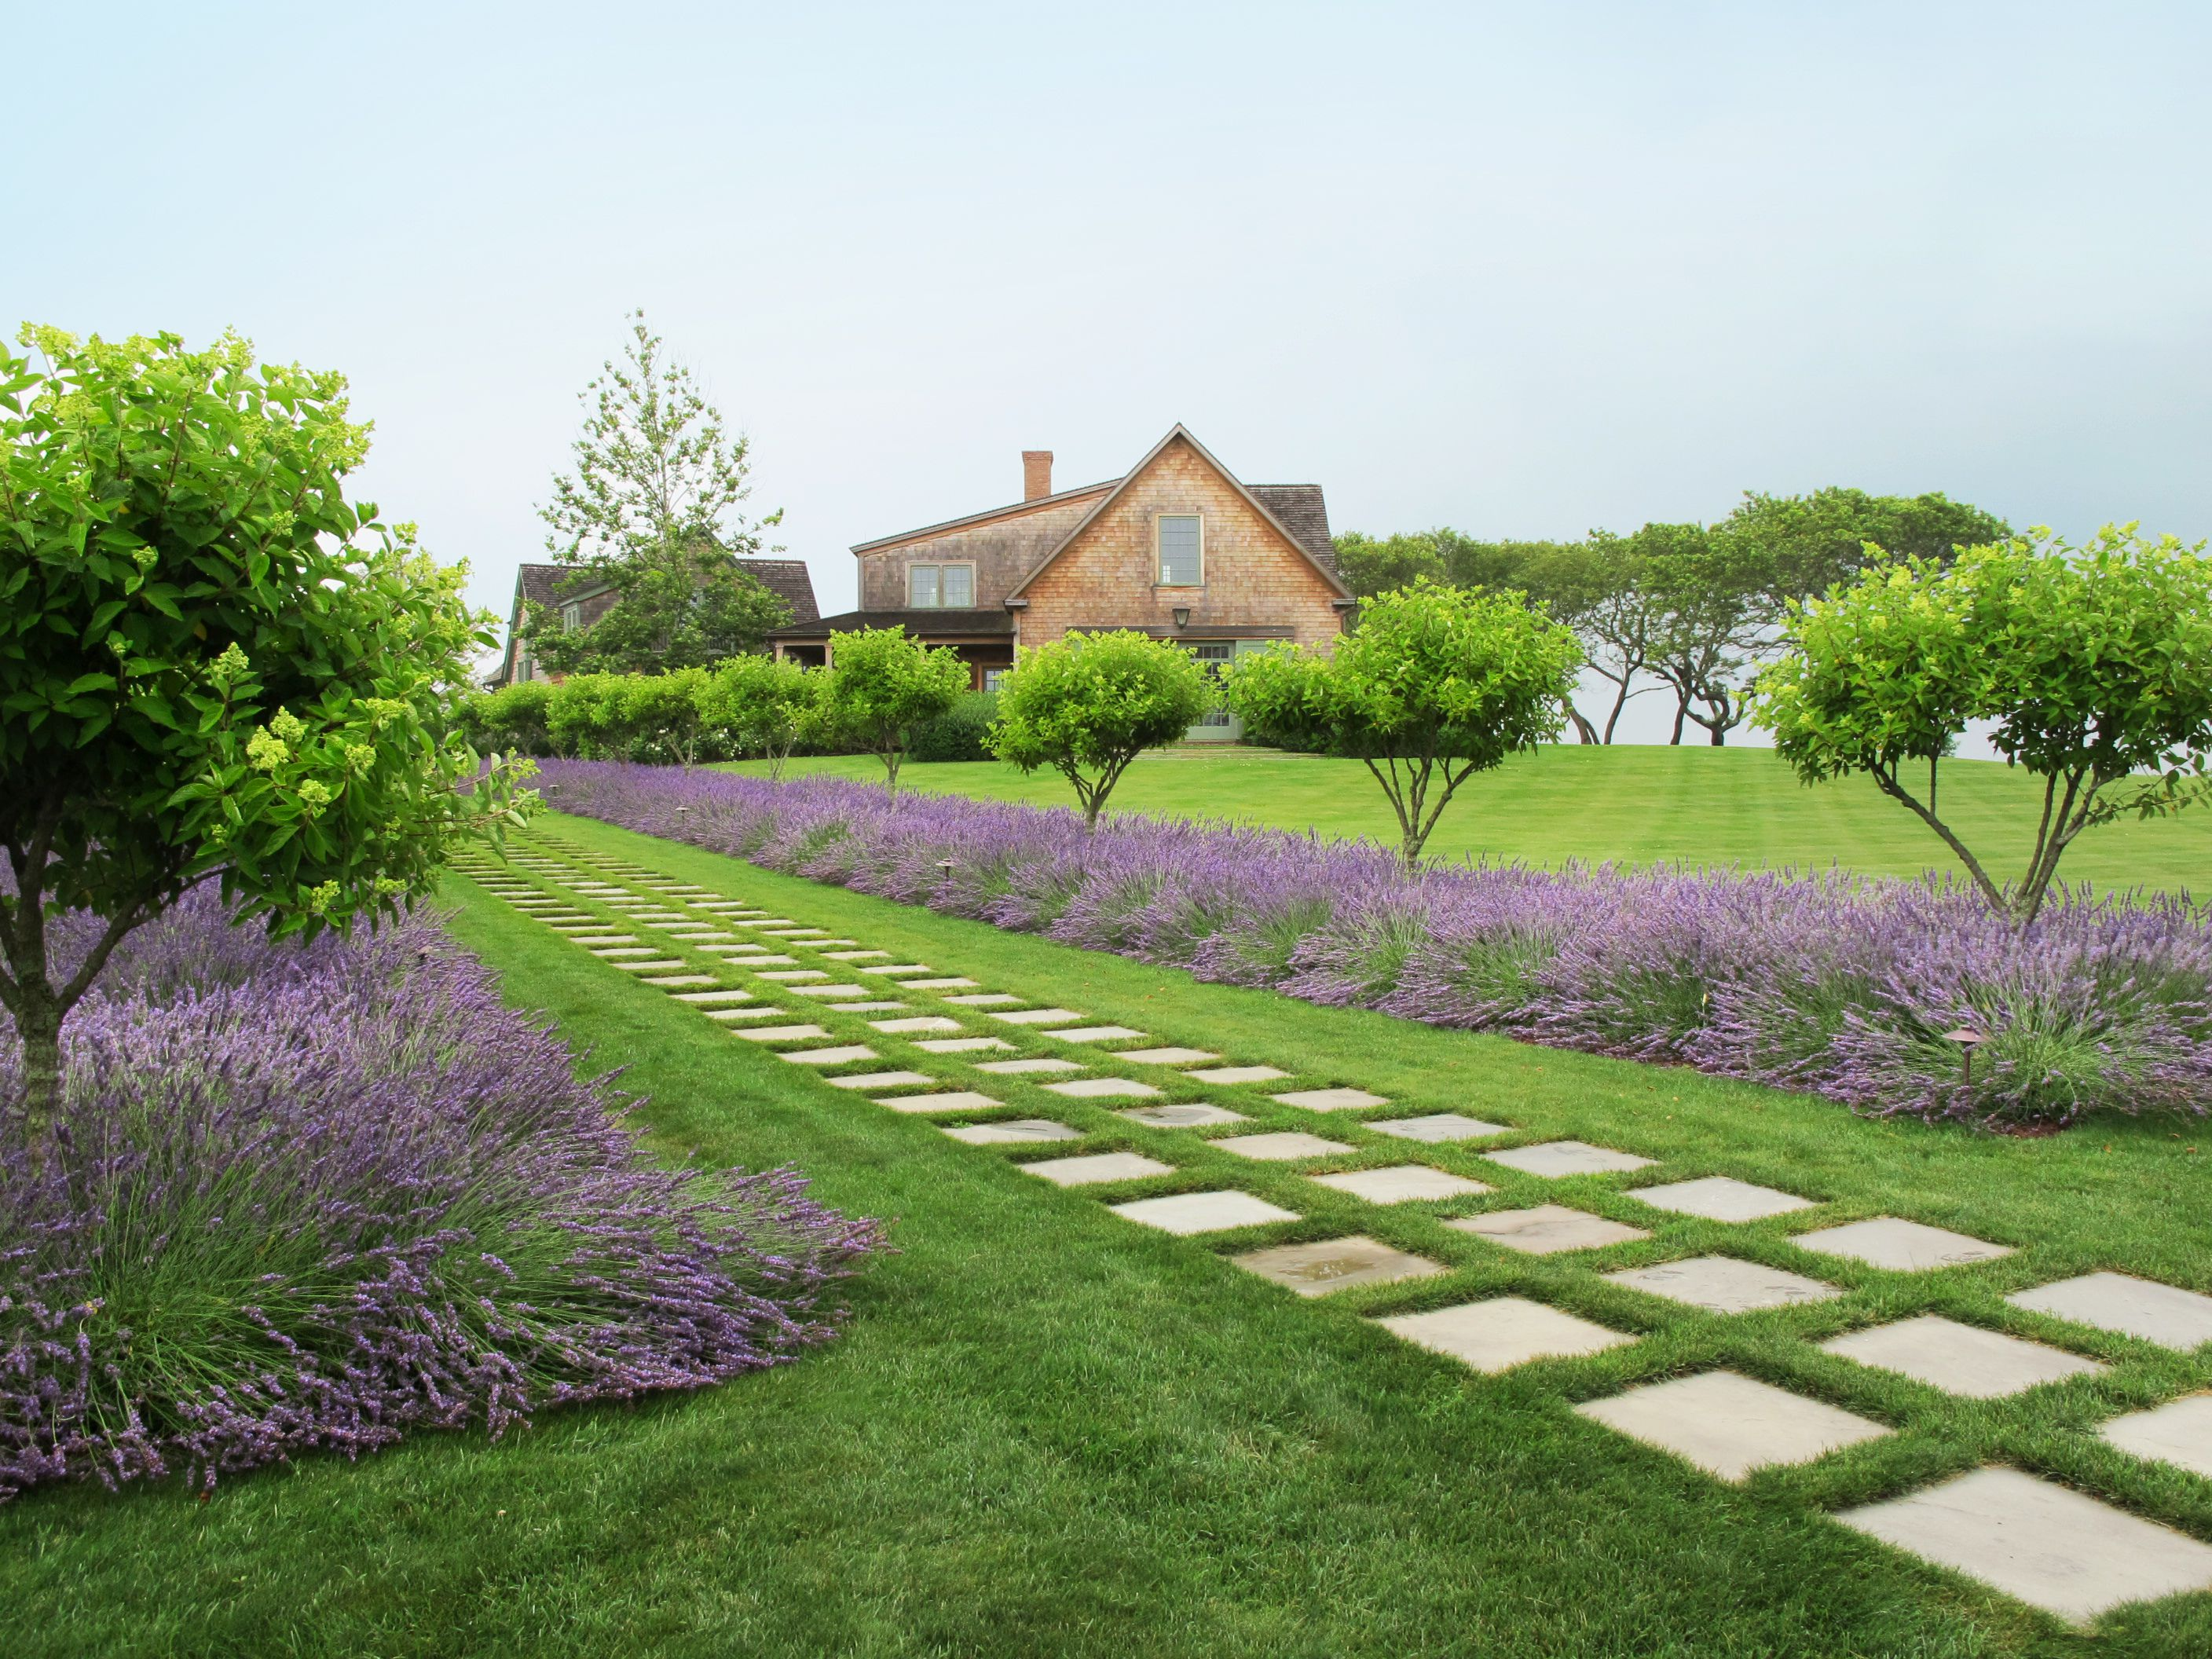 Great to have new landscape   ideas